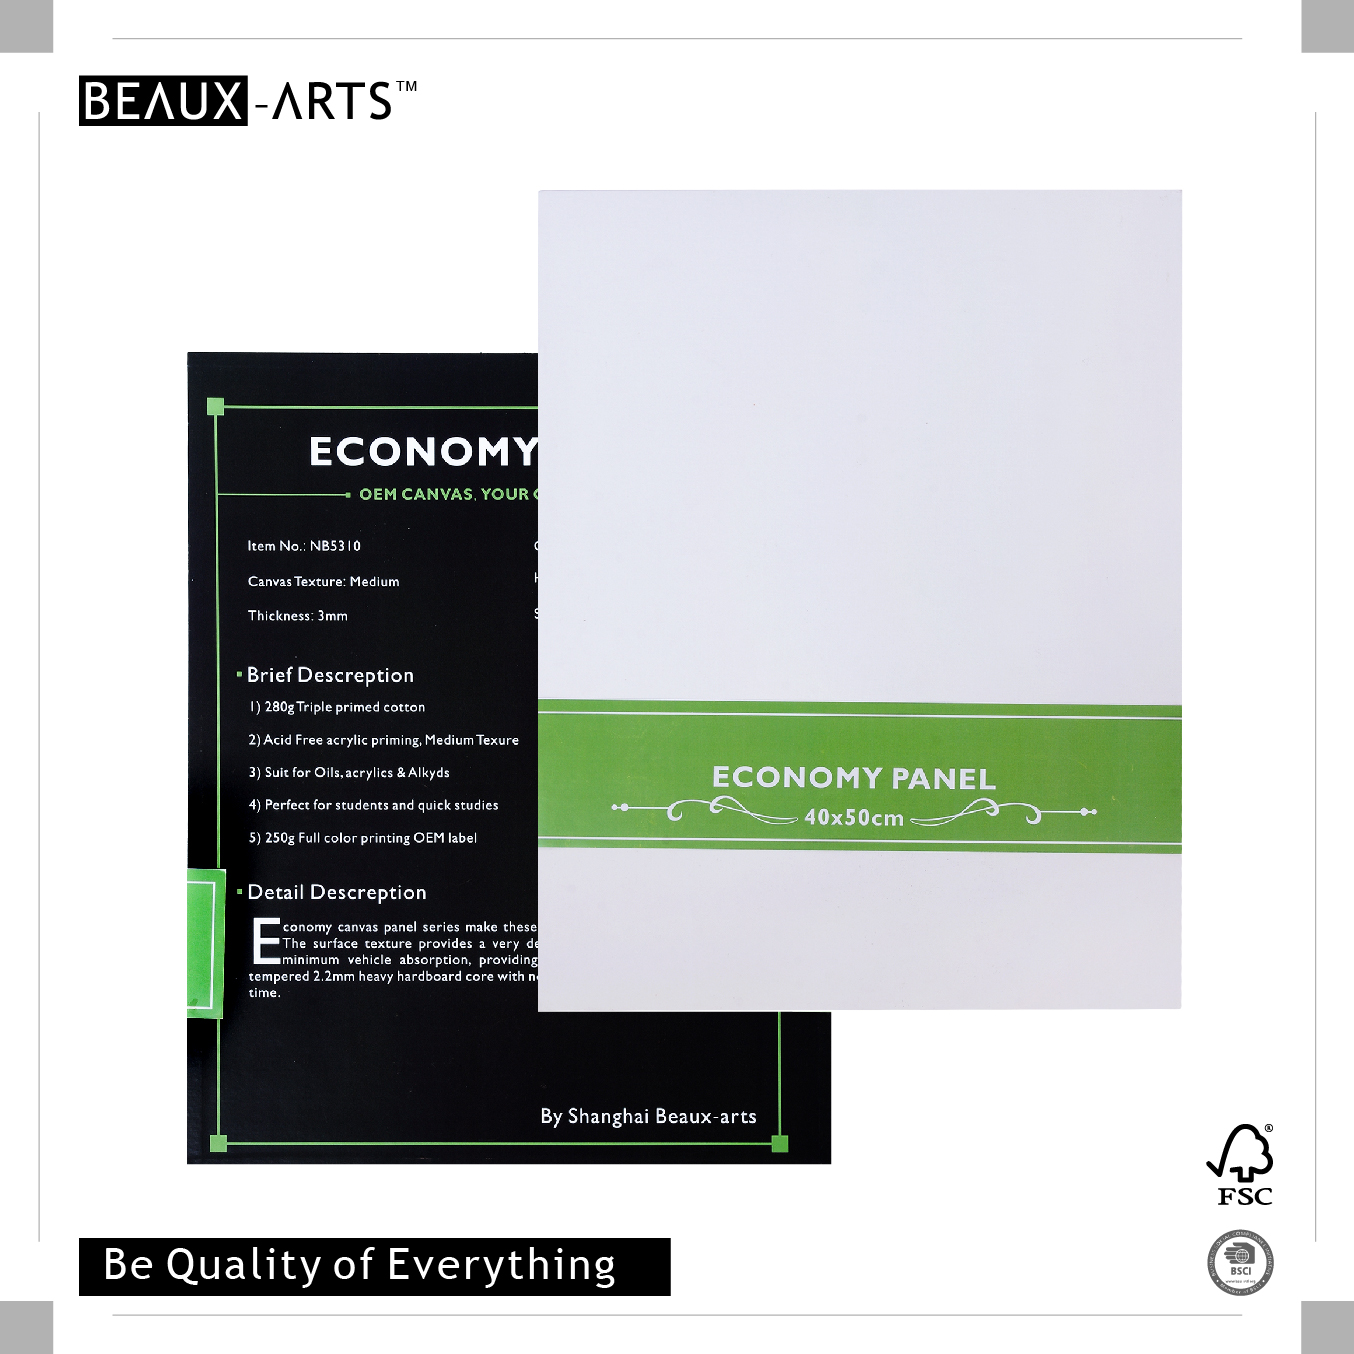 280g Economy Triple Primed Cotton Cheap Artist Canvas Panel for Sale 3mm Thickness Prefect for Quick Studies